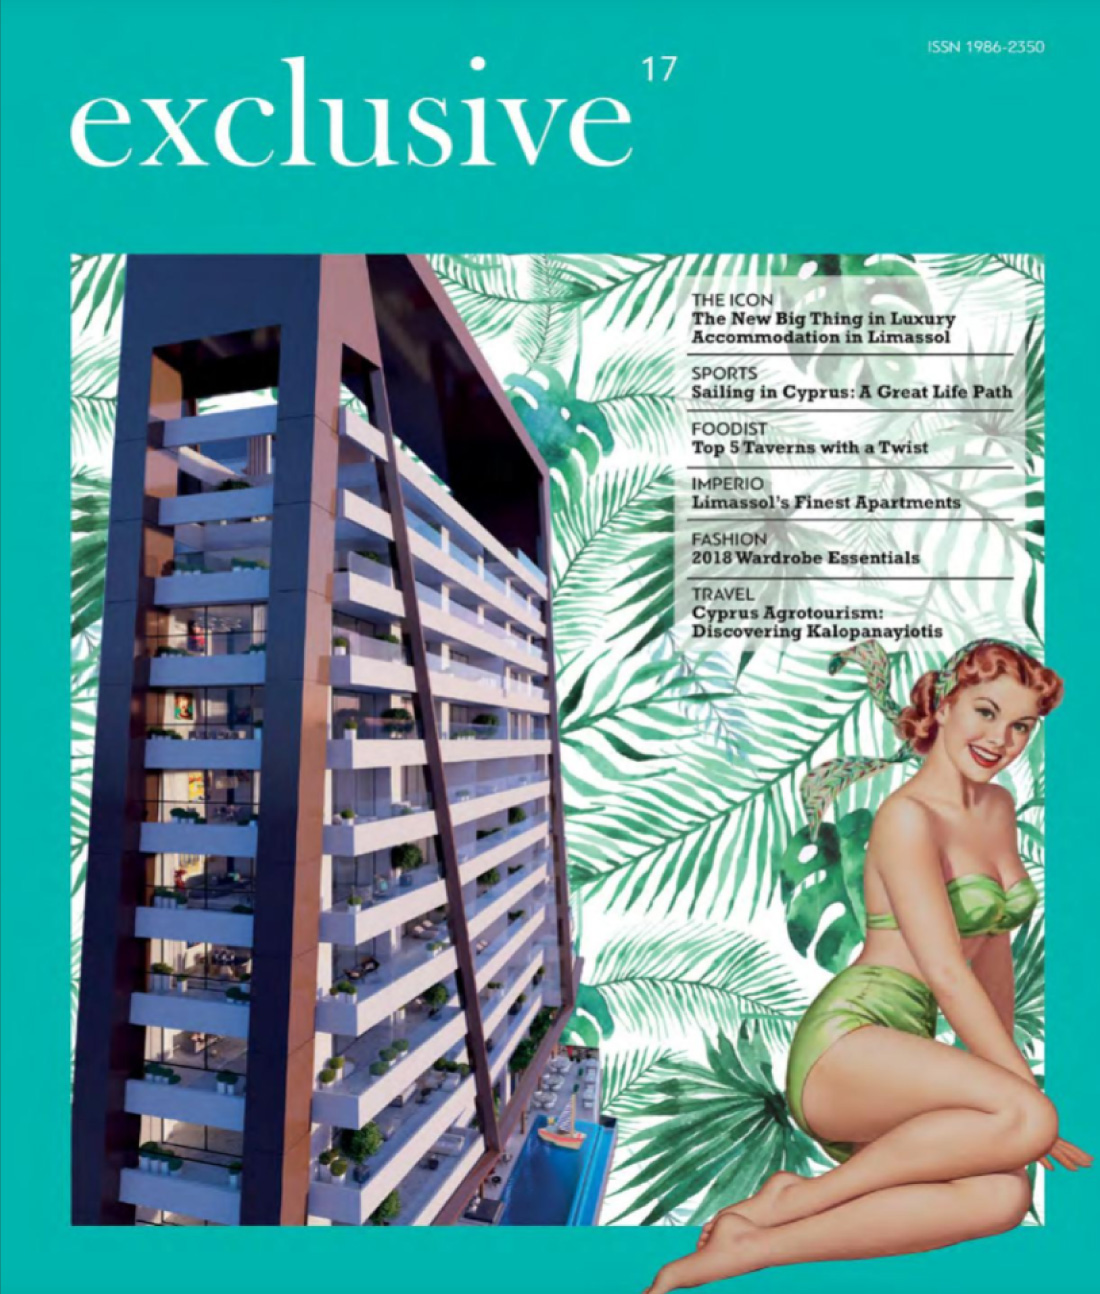 exclusive, exclusivemagazine, imperio, imperioproperties